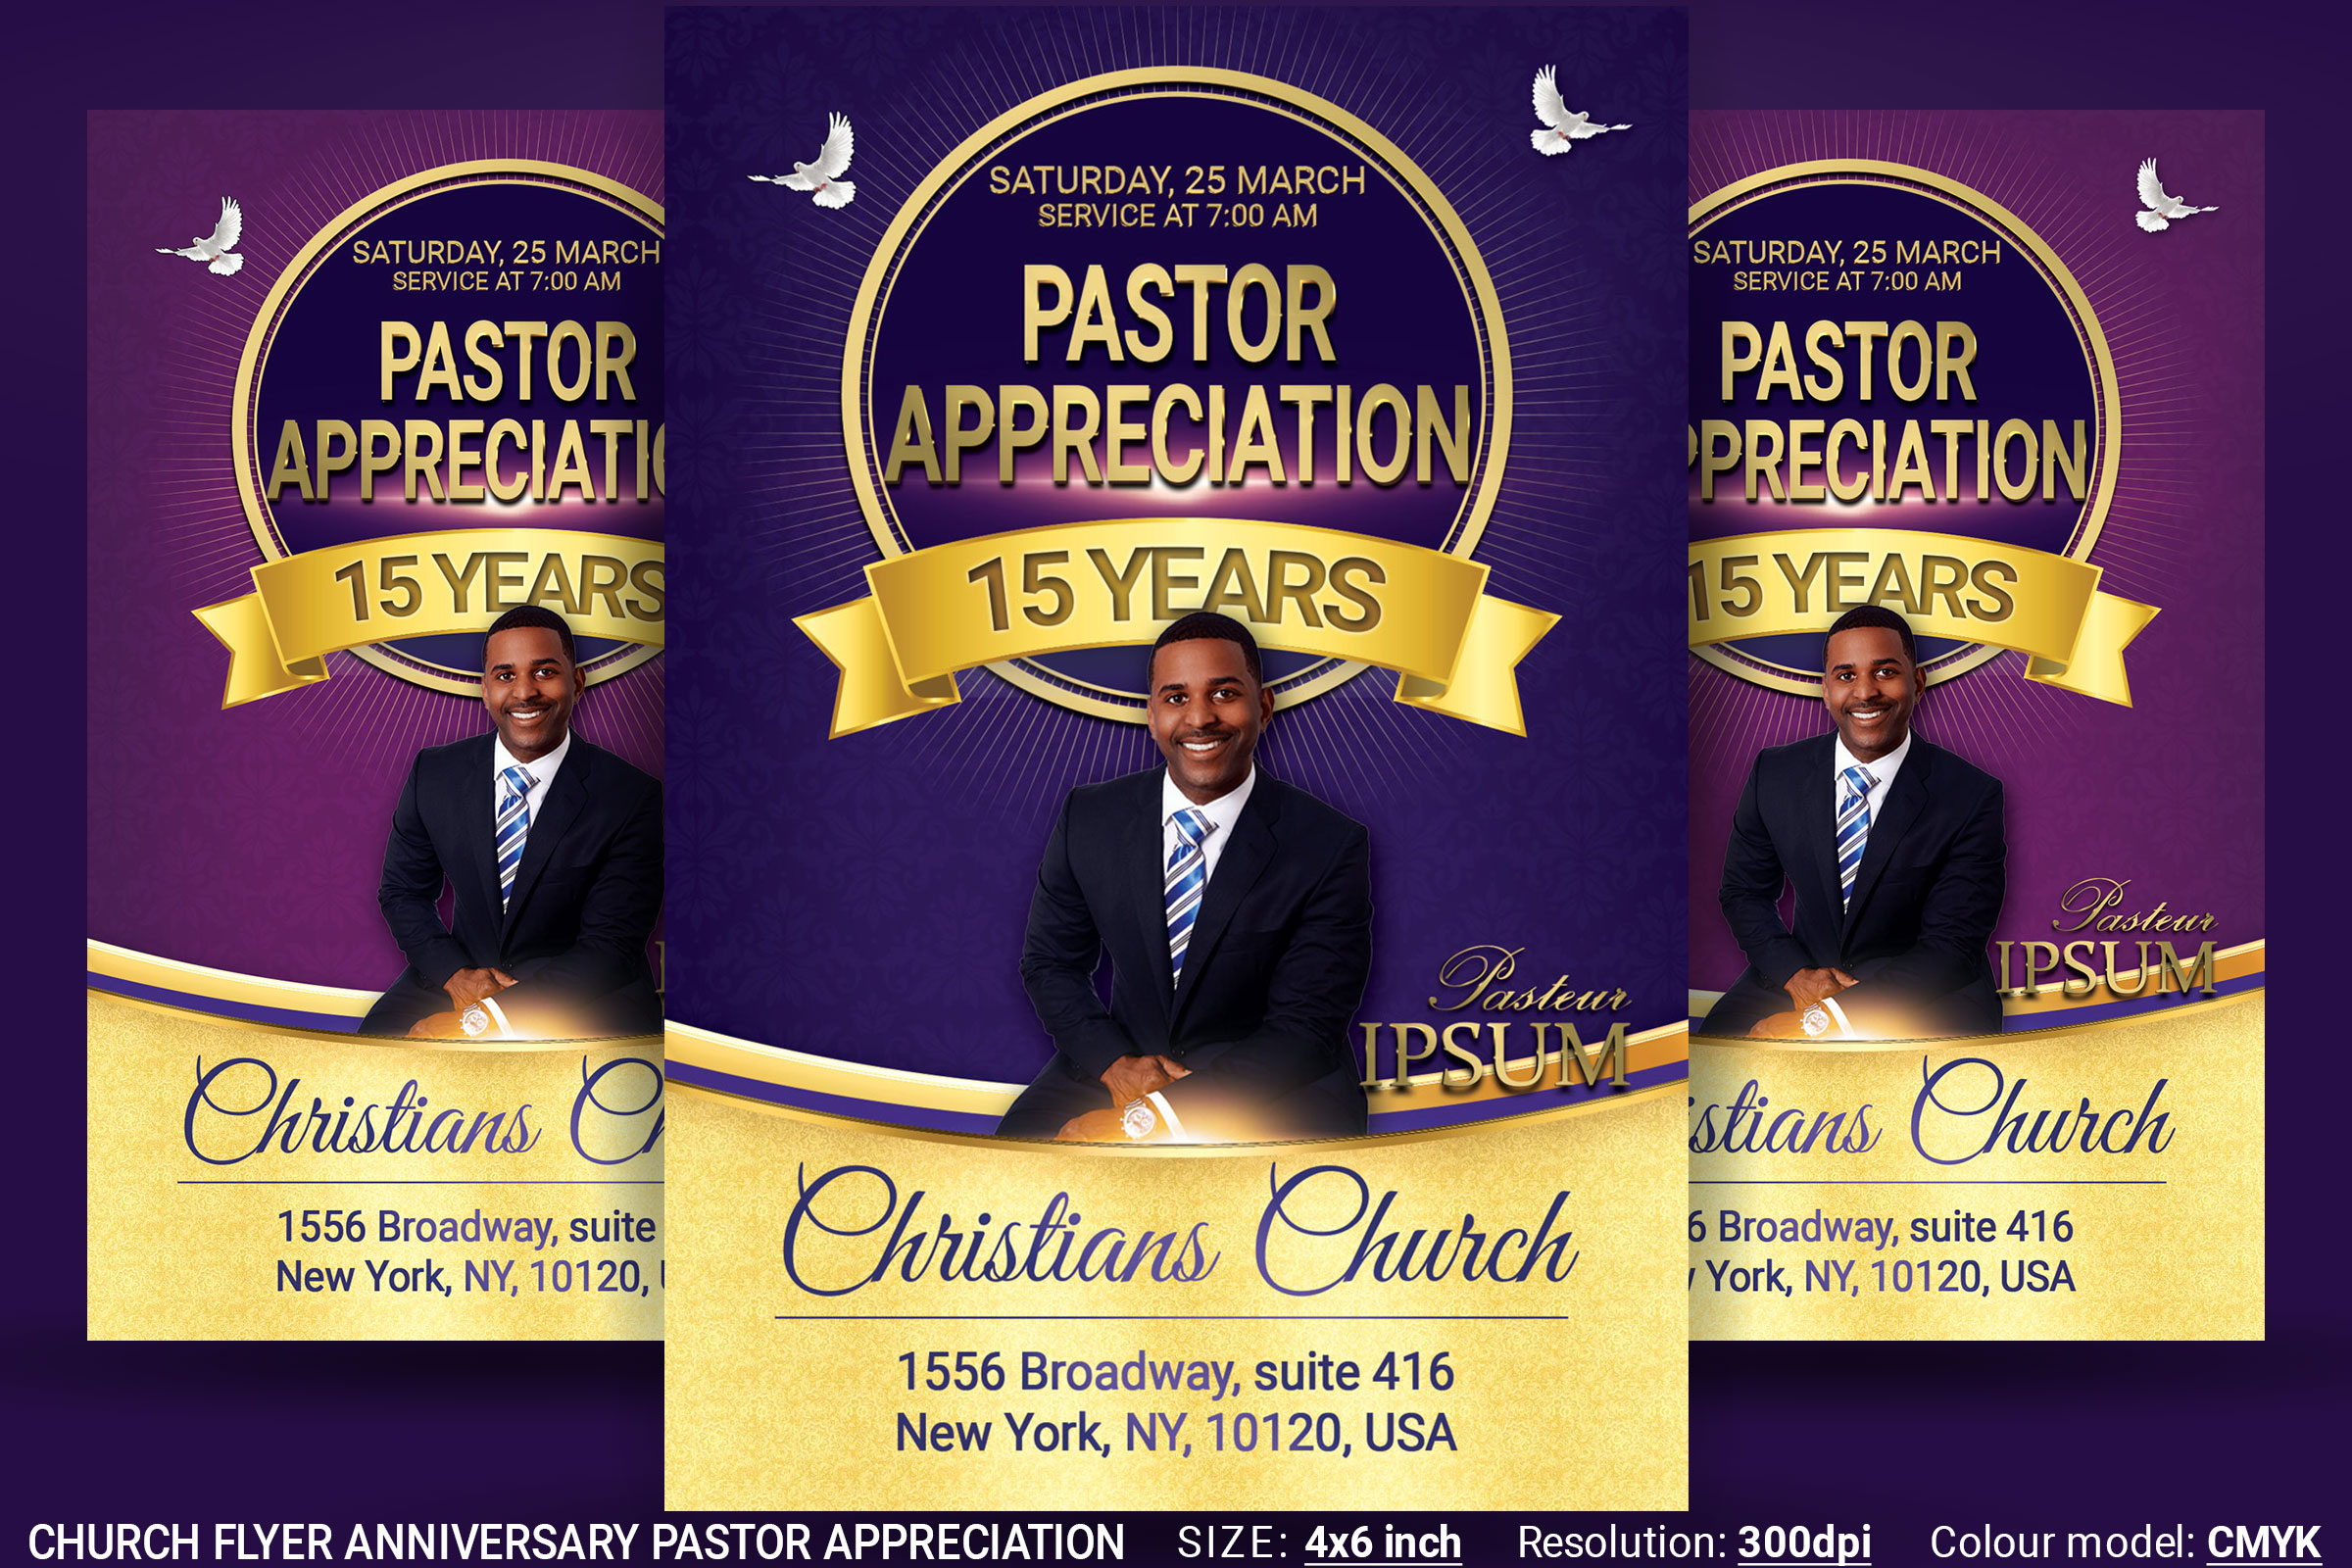 Church Flyer Anniversary Pastor Appreciation Example Image 1